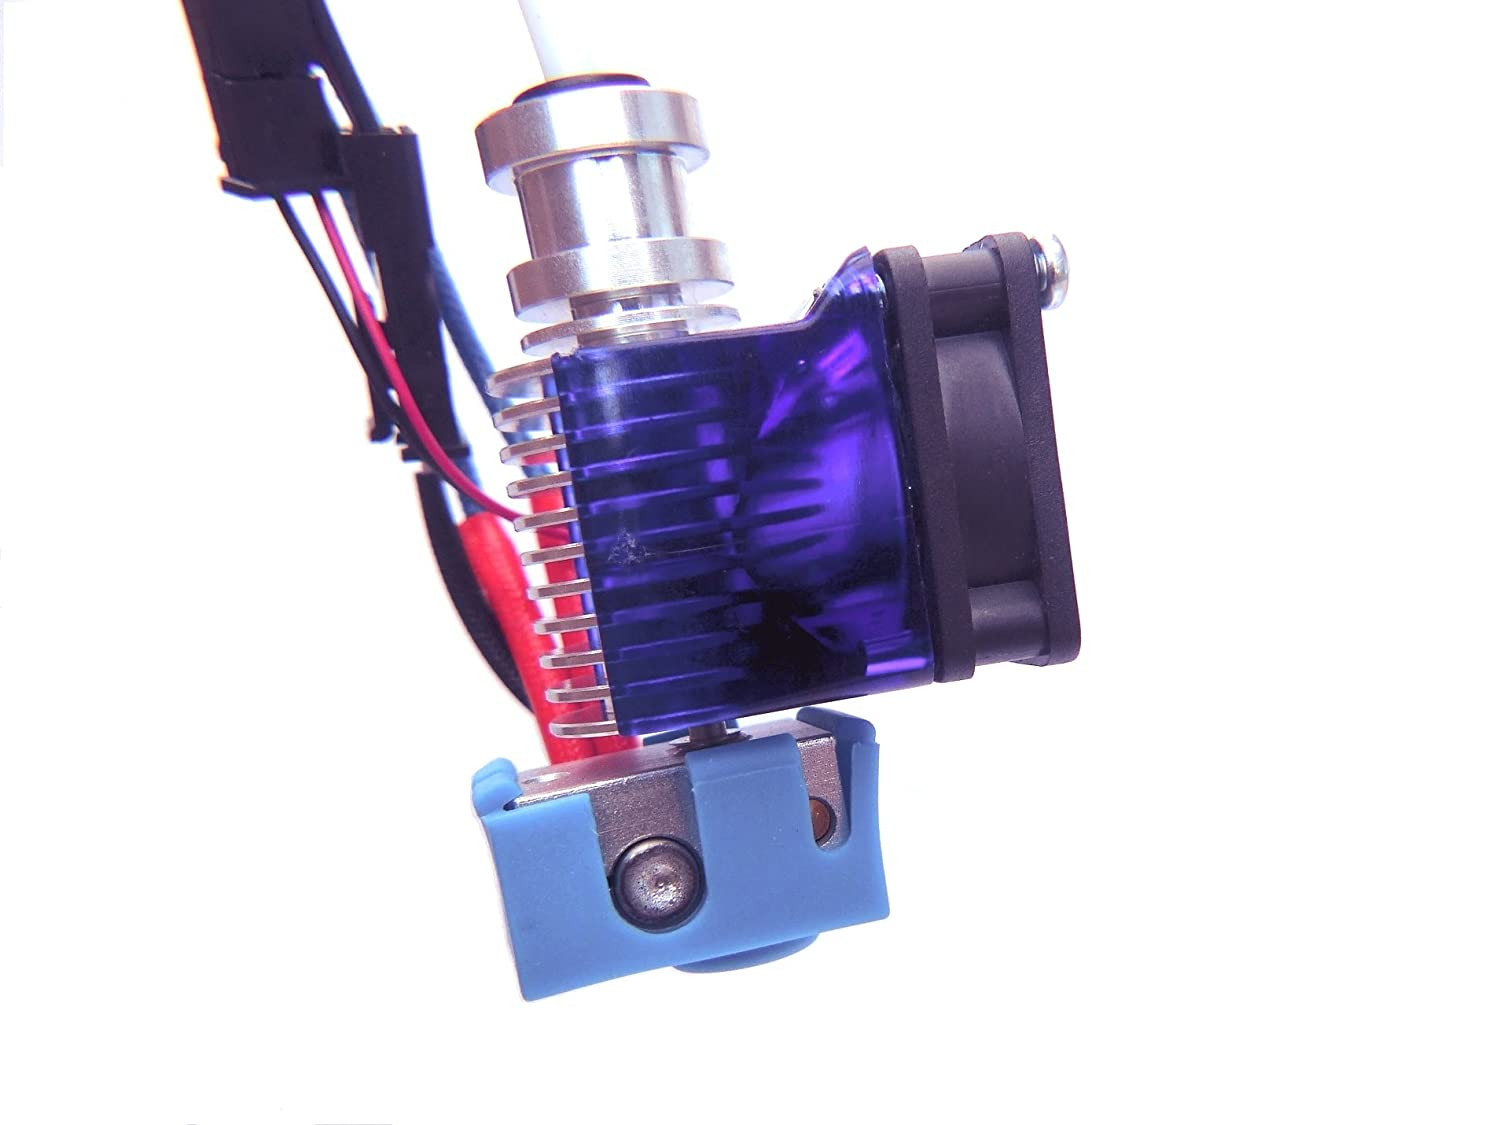 Extruder Hot End Full Kit, 3D Printer J-head 1.75mm Direct (Universal) 12V for Prusa i3 Reprap 3D Printer TCMUK